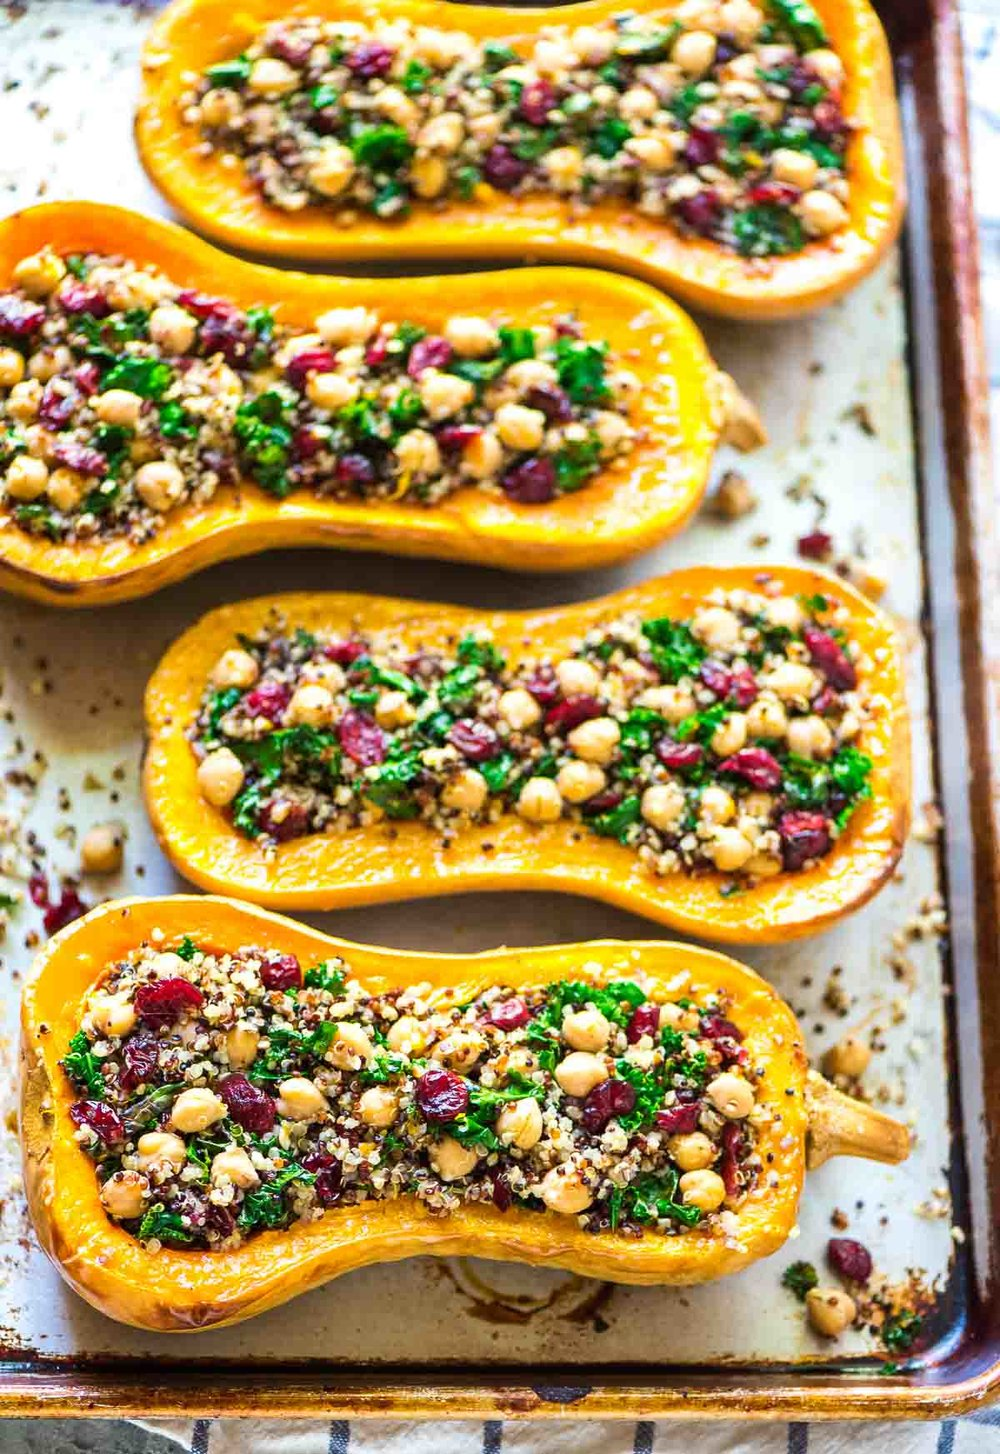 Quinoa Stuffed Butternut Squash - photo by Erin Clarke of Well Plated